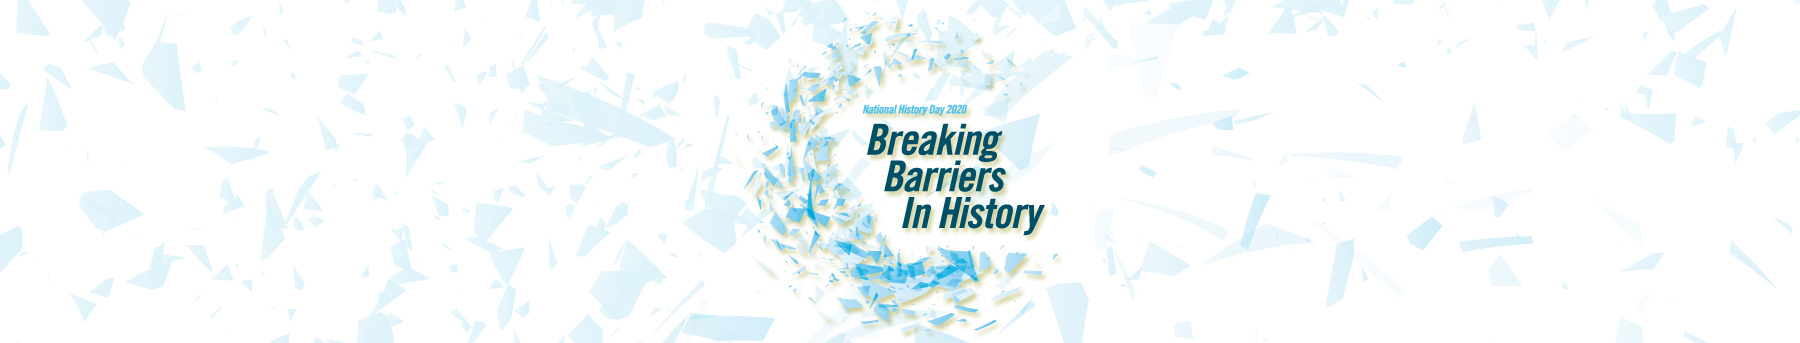 Breaking Barriers in History 2020 National History Day logo